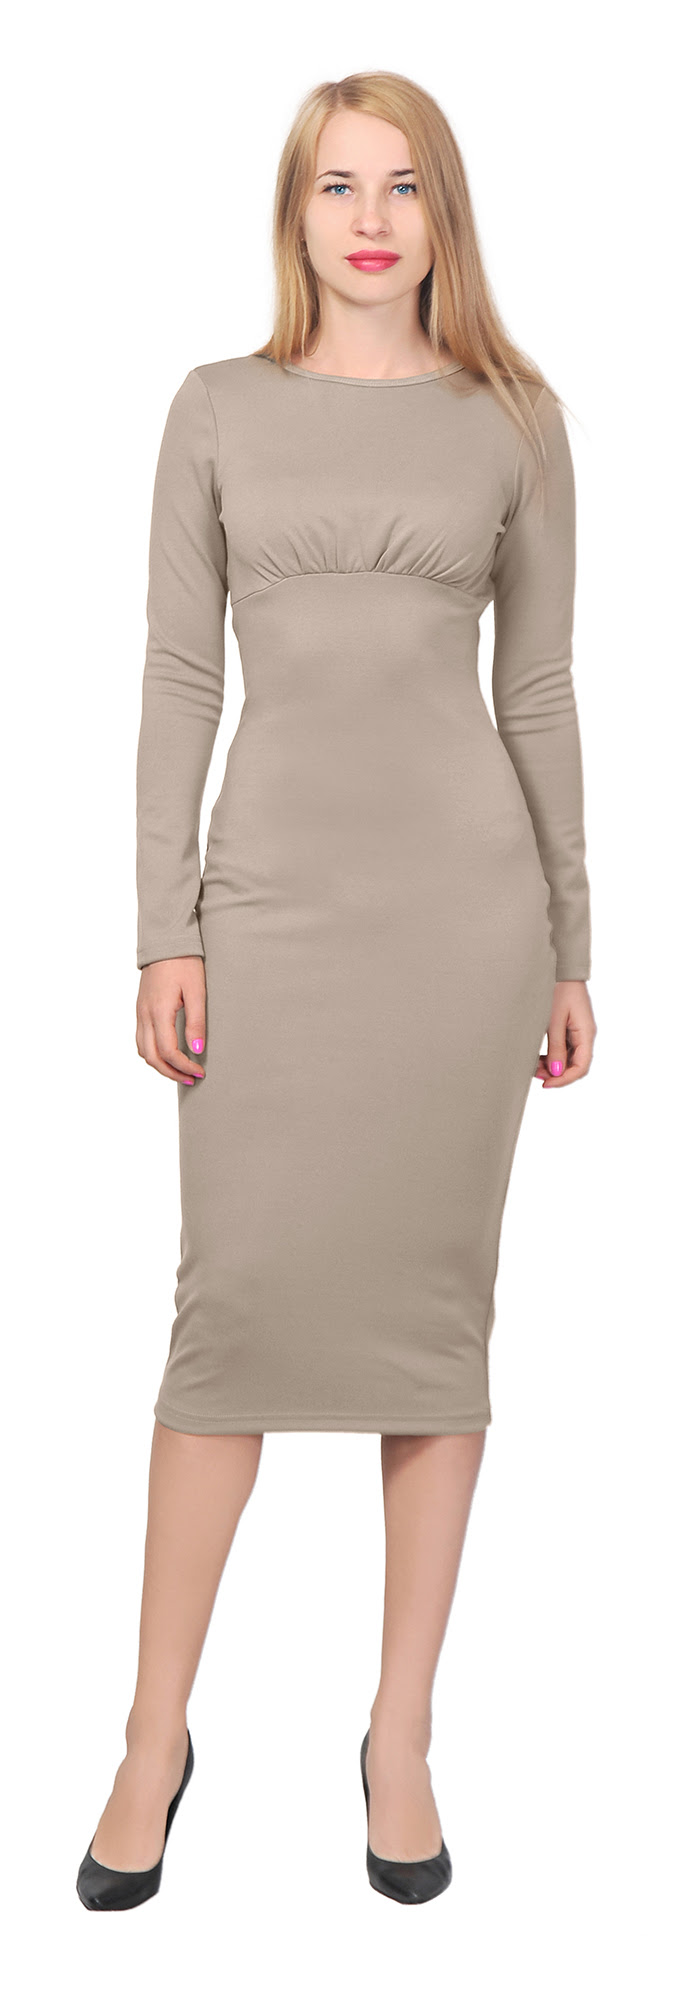 For juniors dress bodycon what a sheath is vs